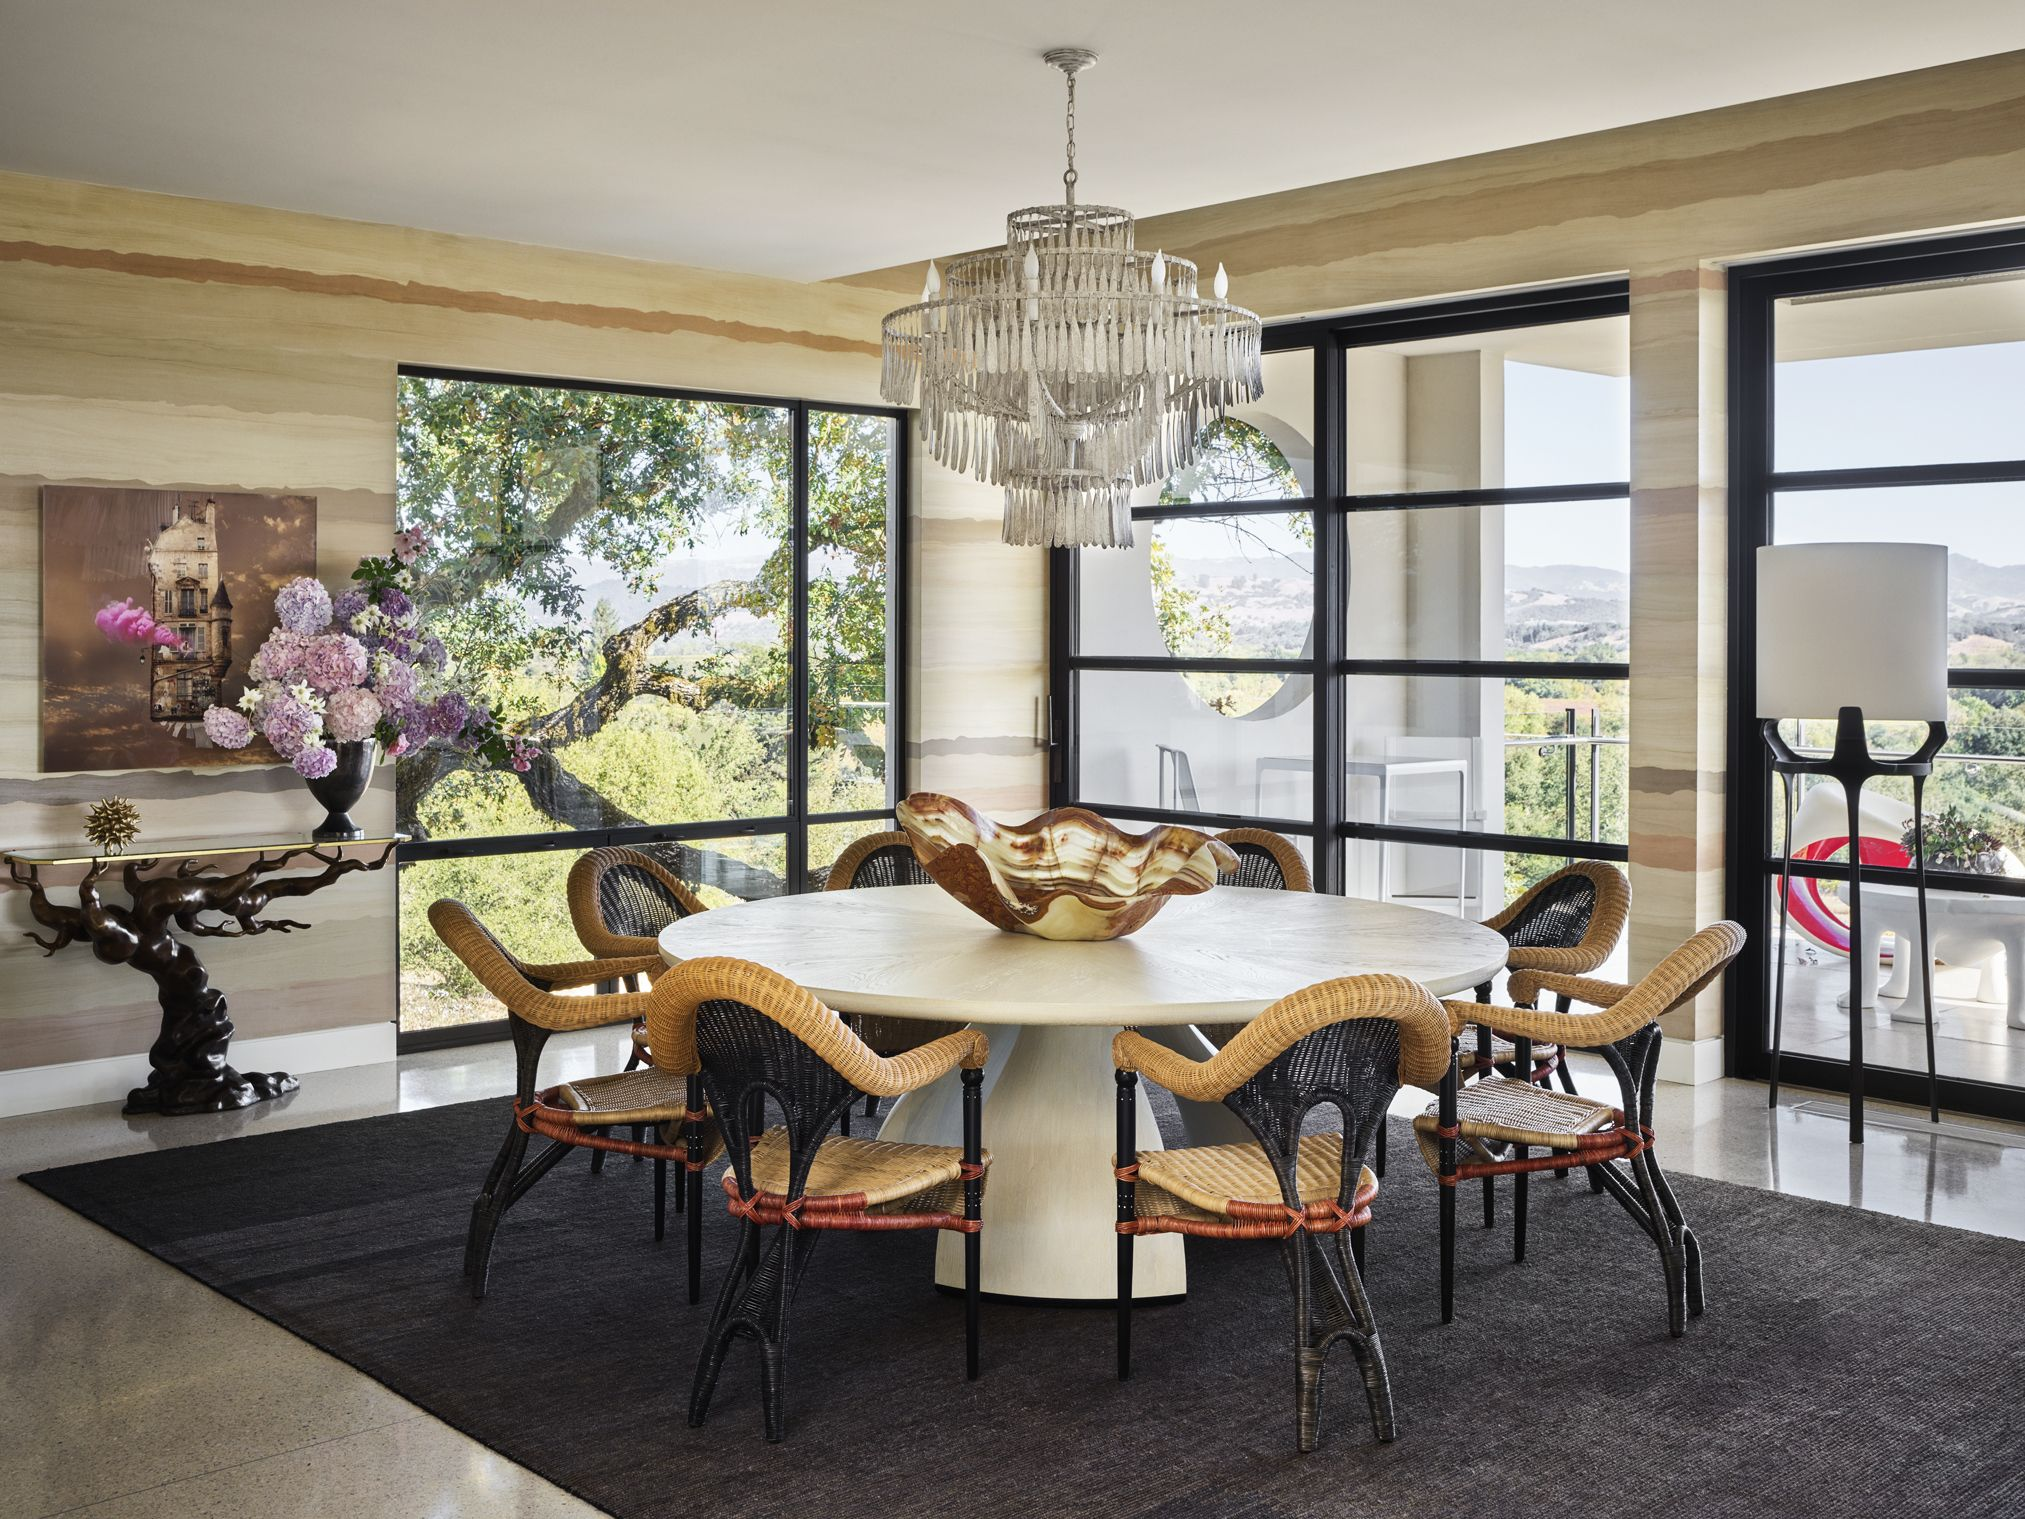 Some of the most elegant round dining room tables 2021